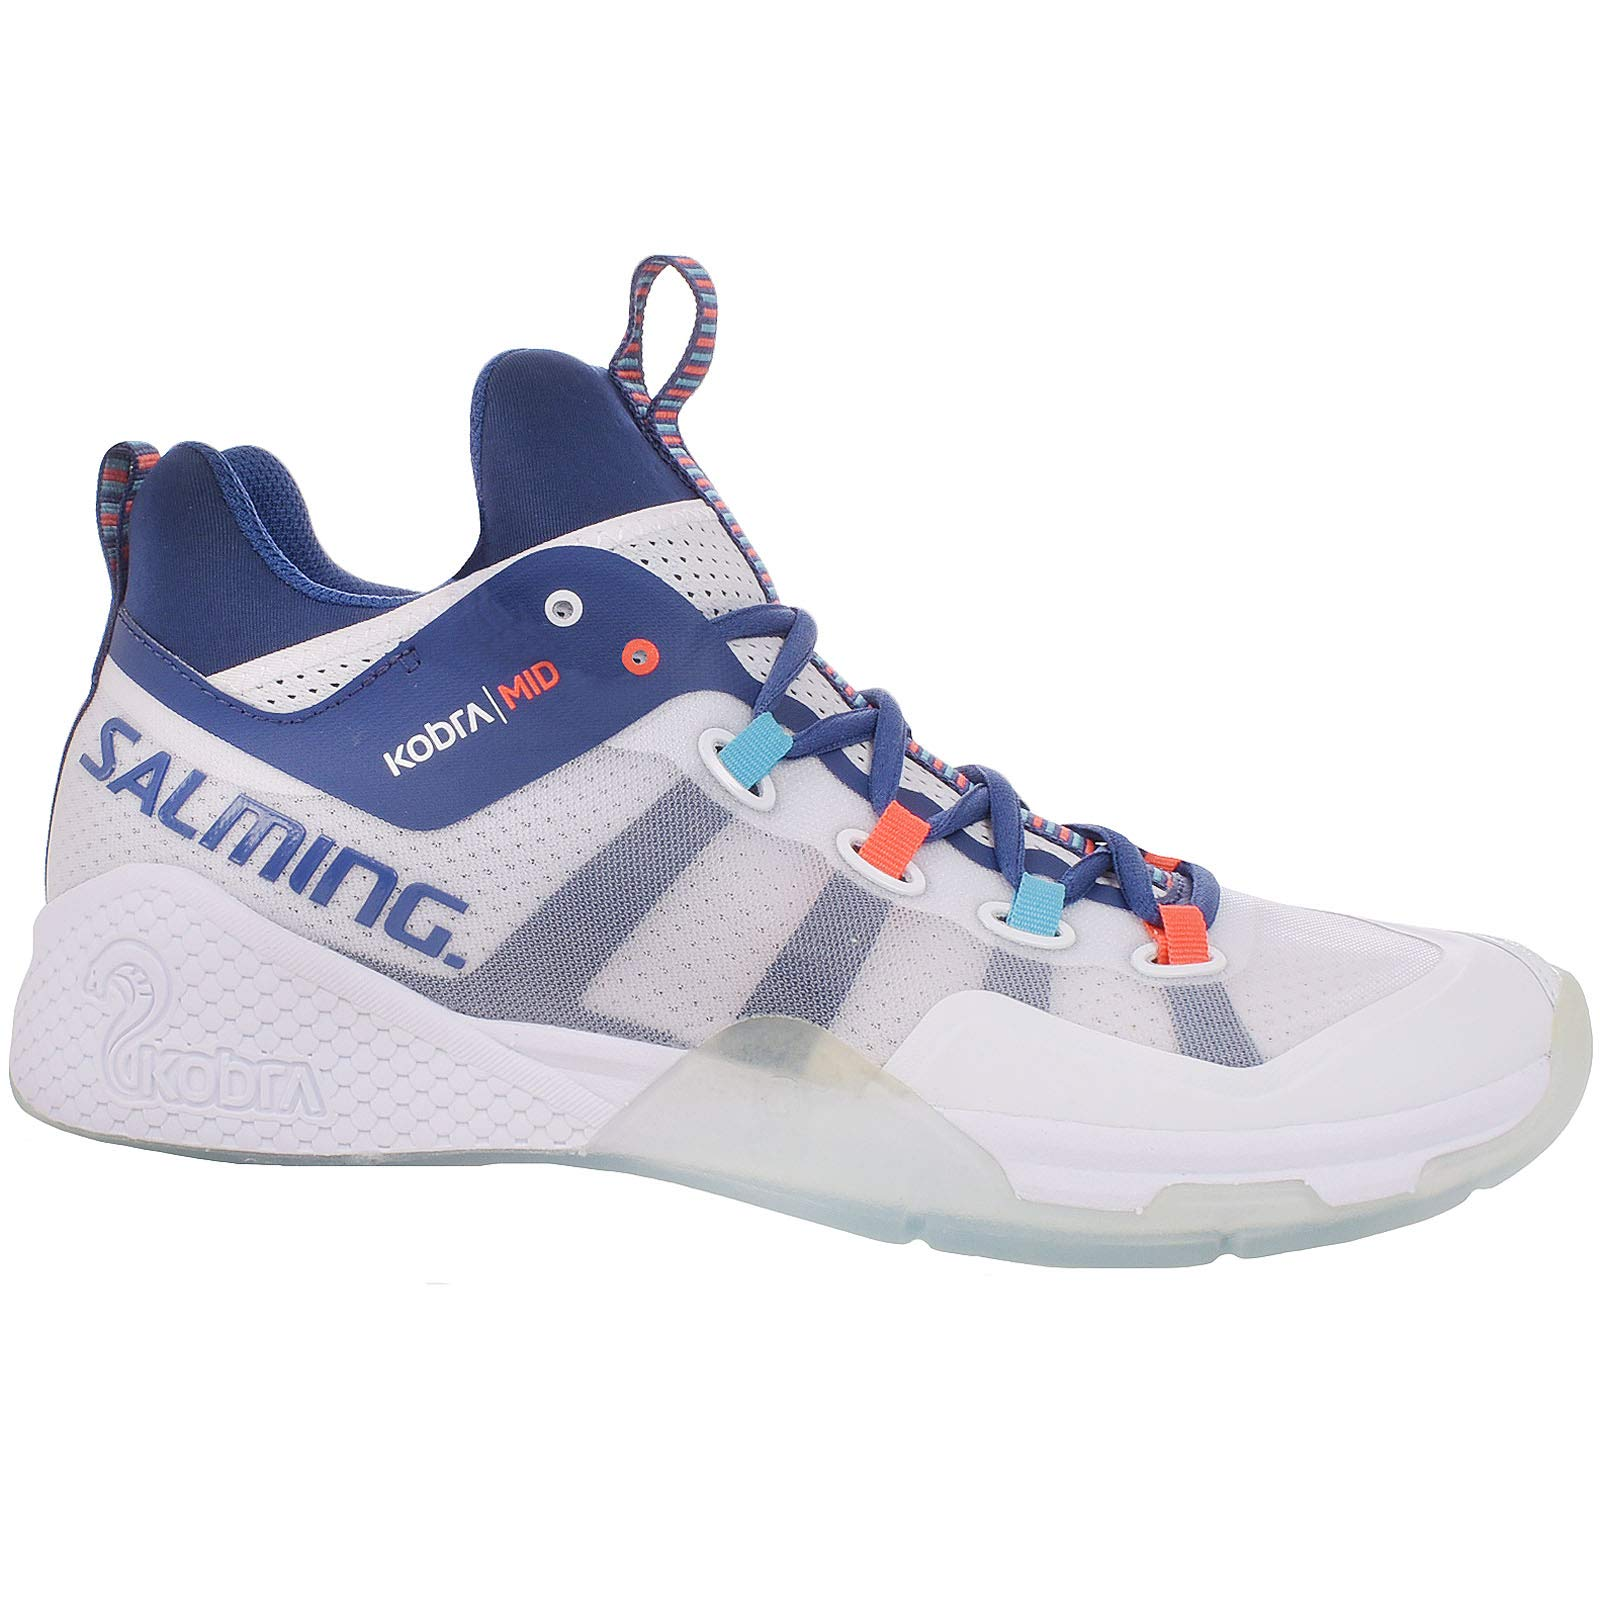 Salming Mens Kobra Mid 2 Sports Indoor Court Trainers - White/Blue - 9US